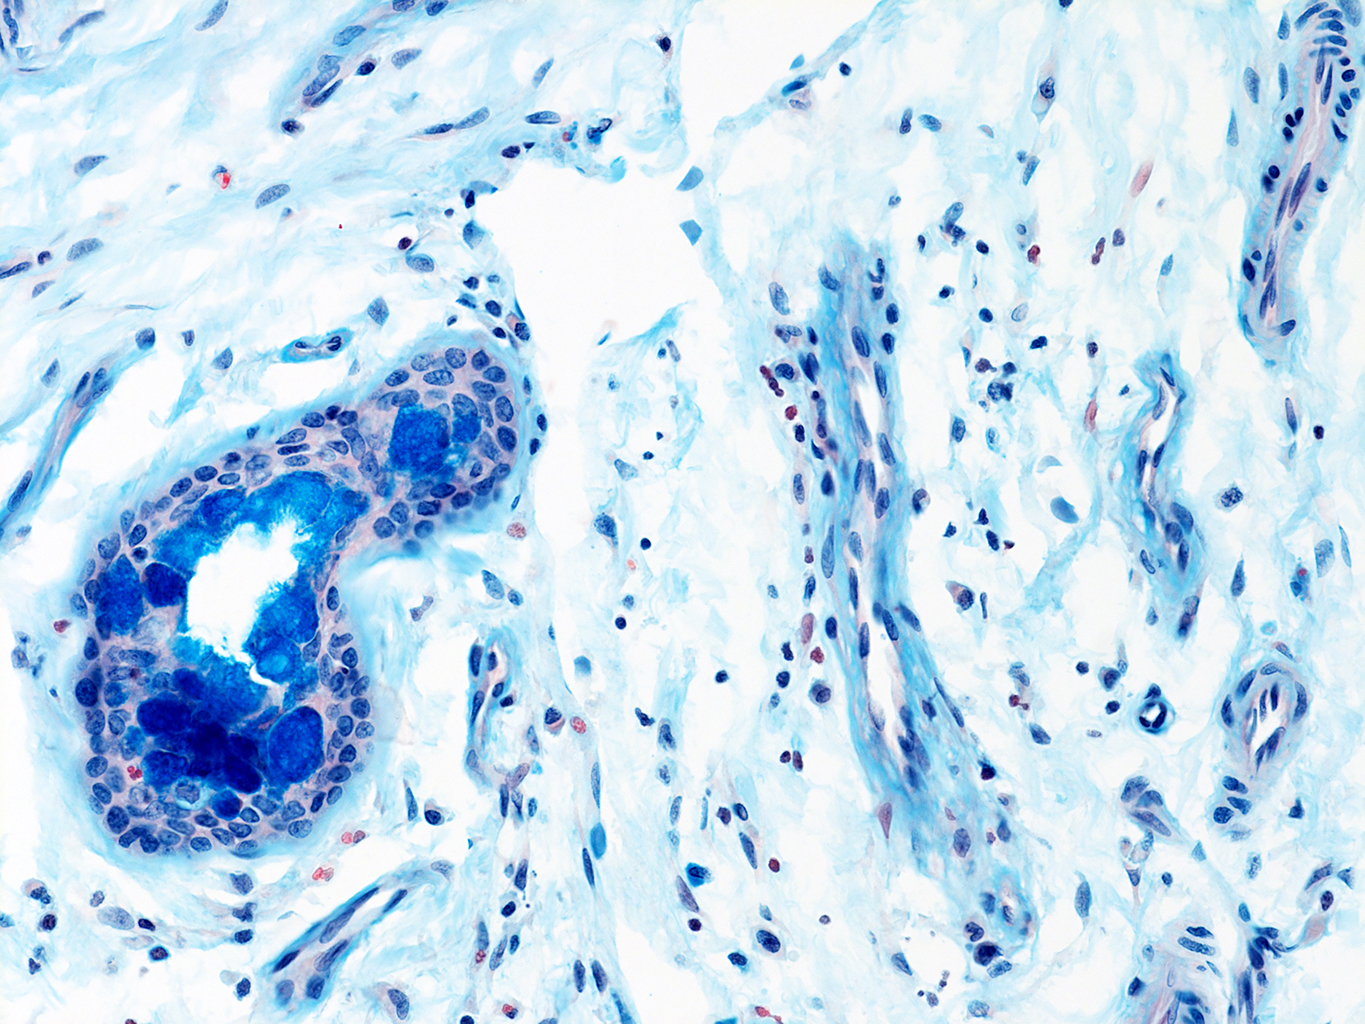 AB Staining of 14 Month-Old Human Lung from Donor D072-LLL-13B4